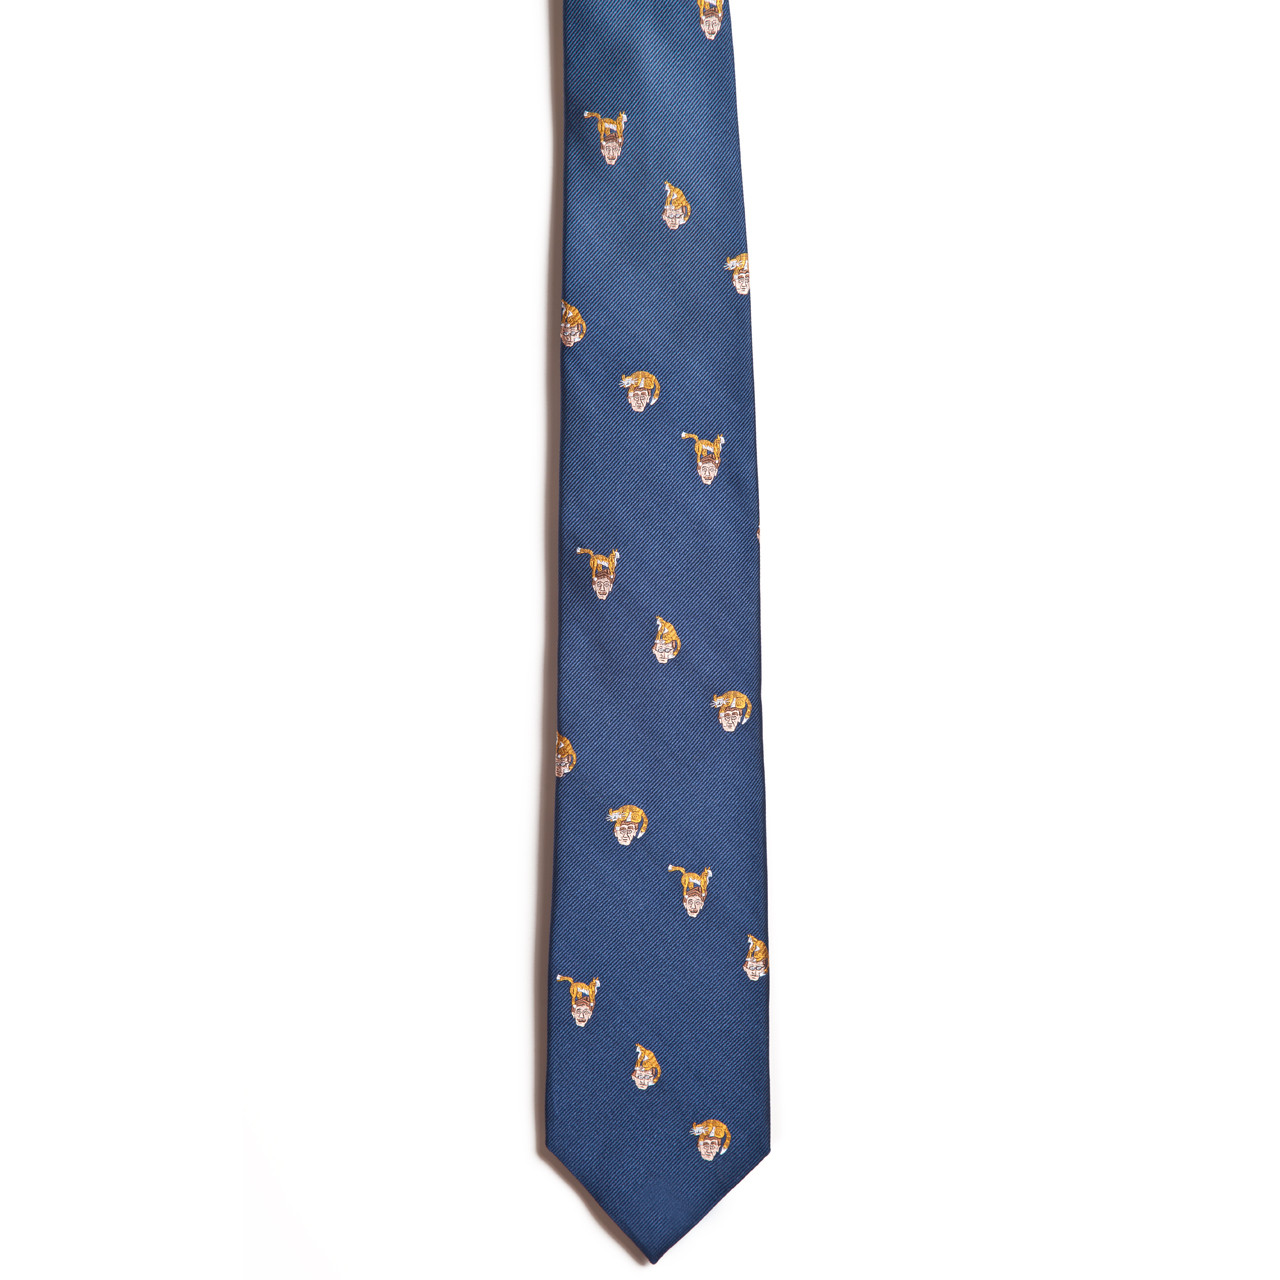 tie-novelty-pussy-on-mind__70802.1385159892.1280.1280.jpg?c=2